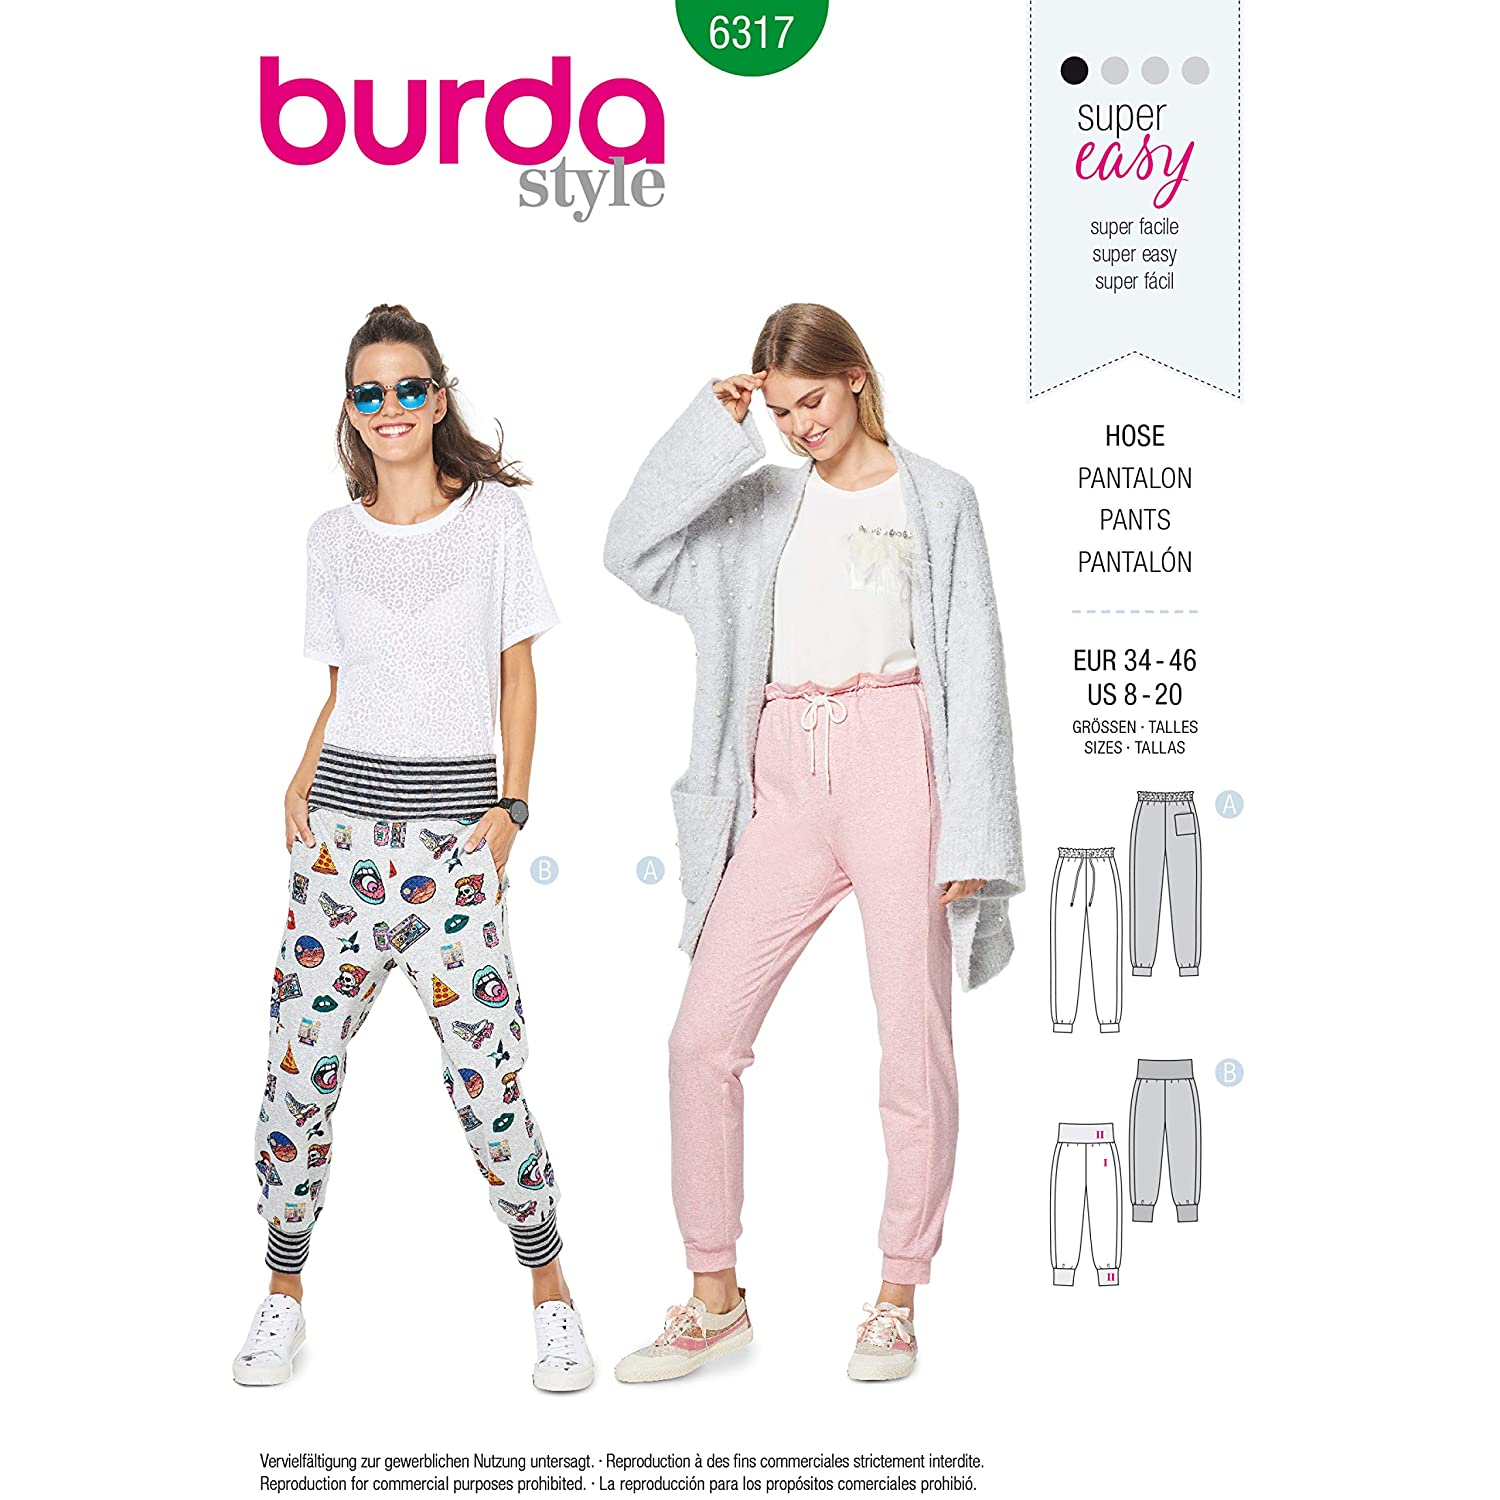 Amazon.com: Burda Style Sewing Pattern 6317 - Misses Jogging Pull On Pant, A(8-10-12-14-16-18-20): Arts, Crafts & Sewing